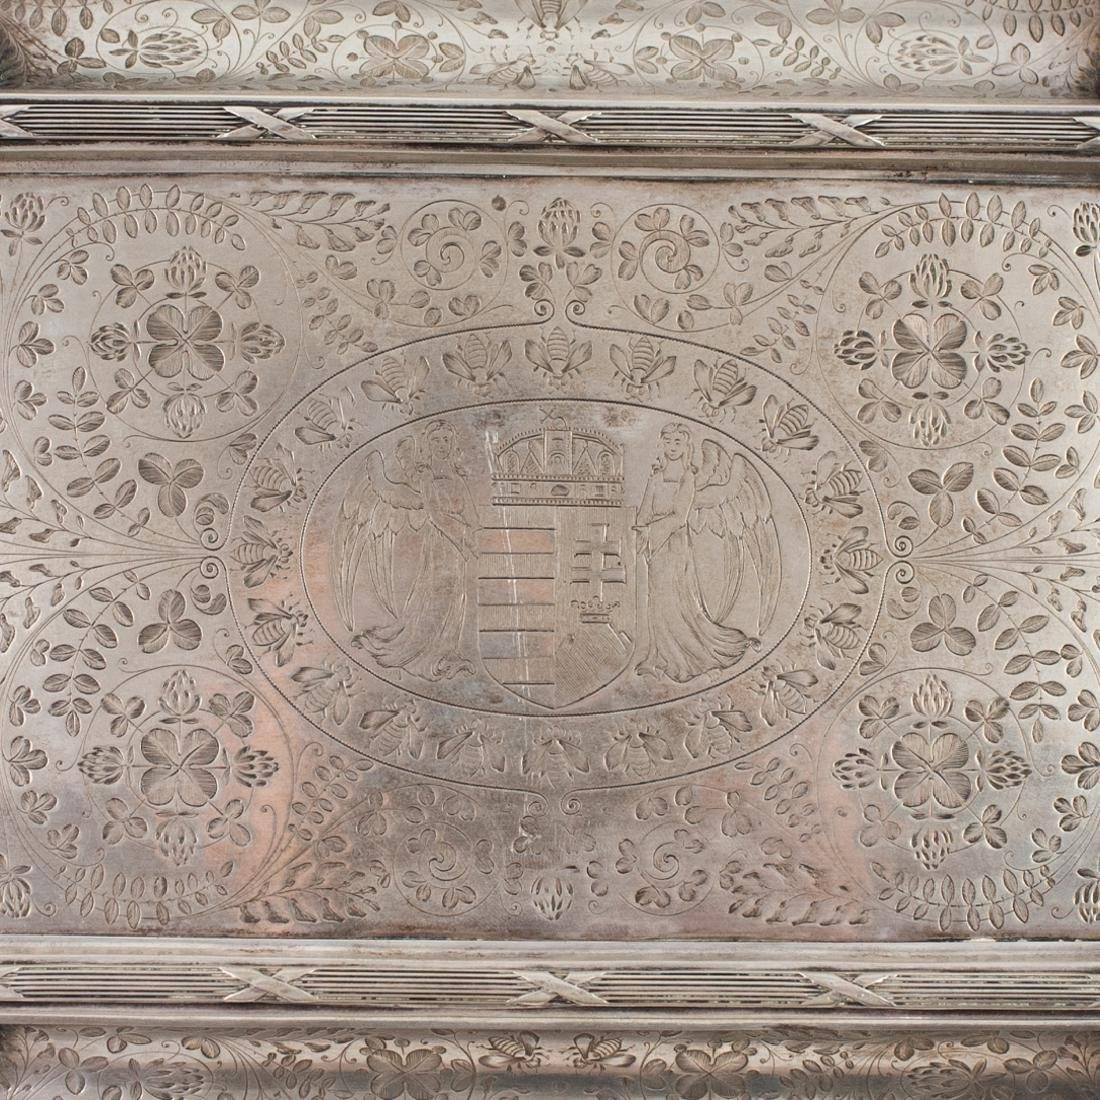 Antal Bachruch Antique Silver Jewelry Box - 3